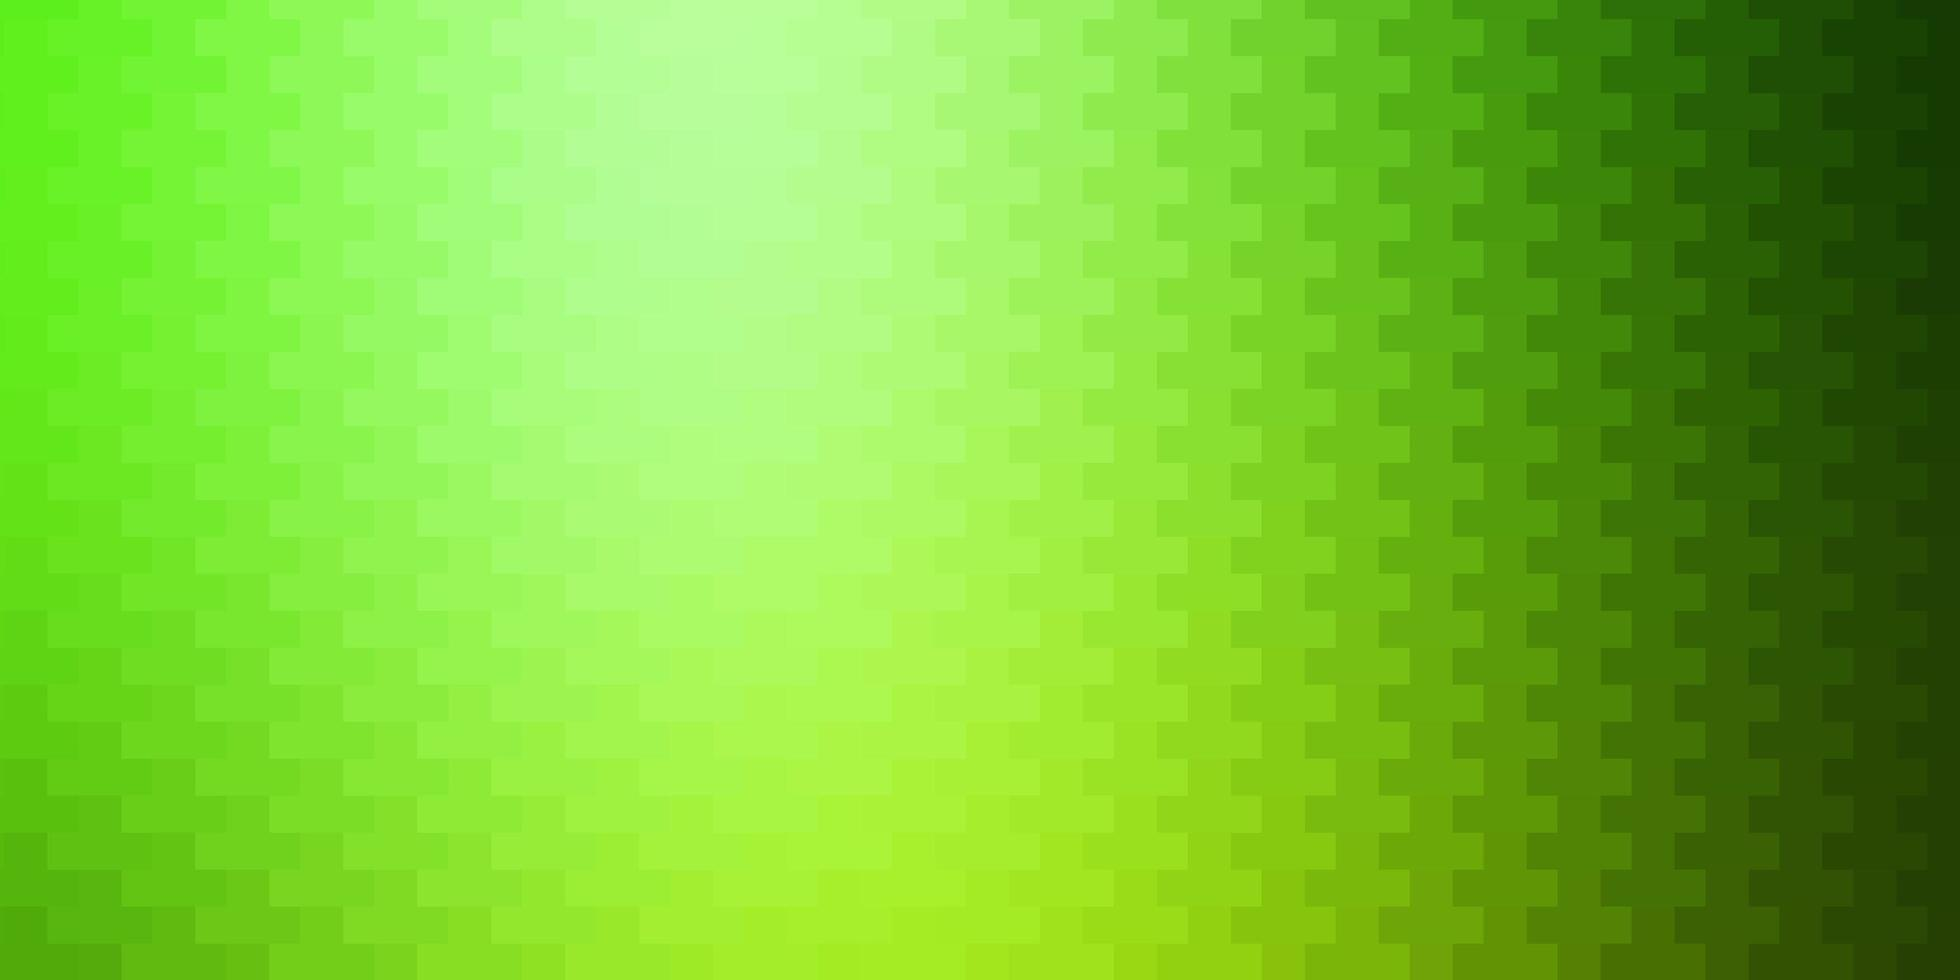 Light Green vector pattern in square style.